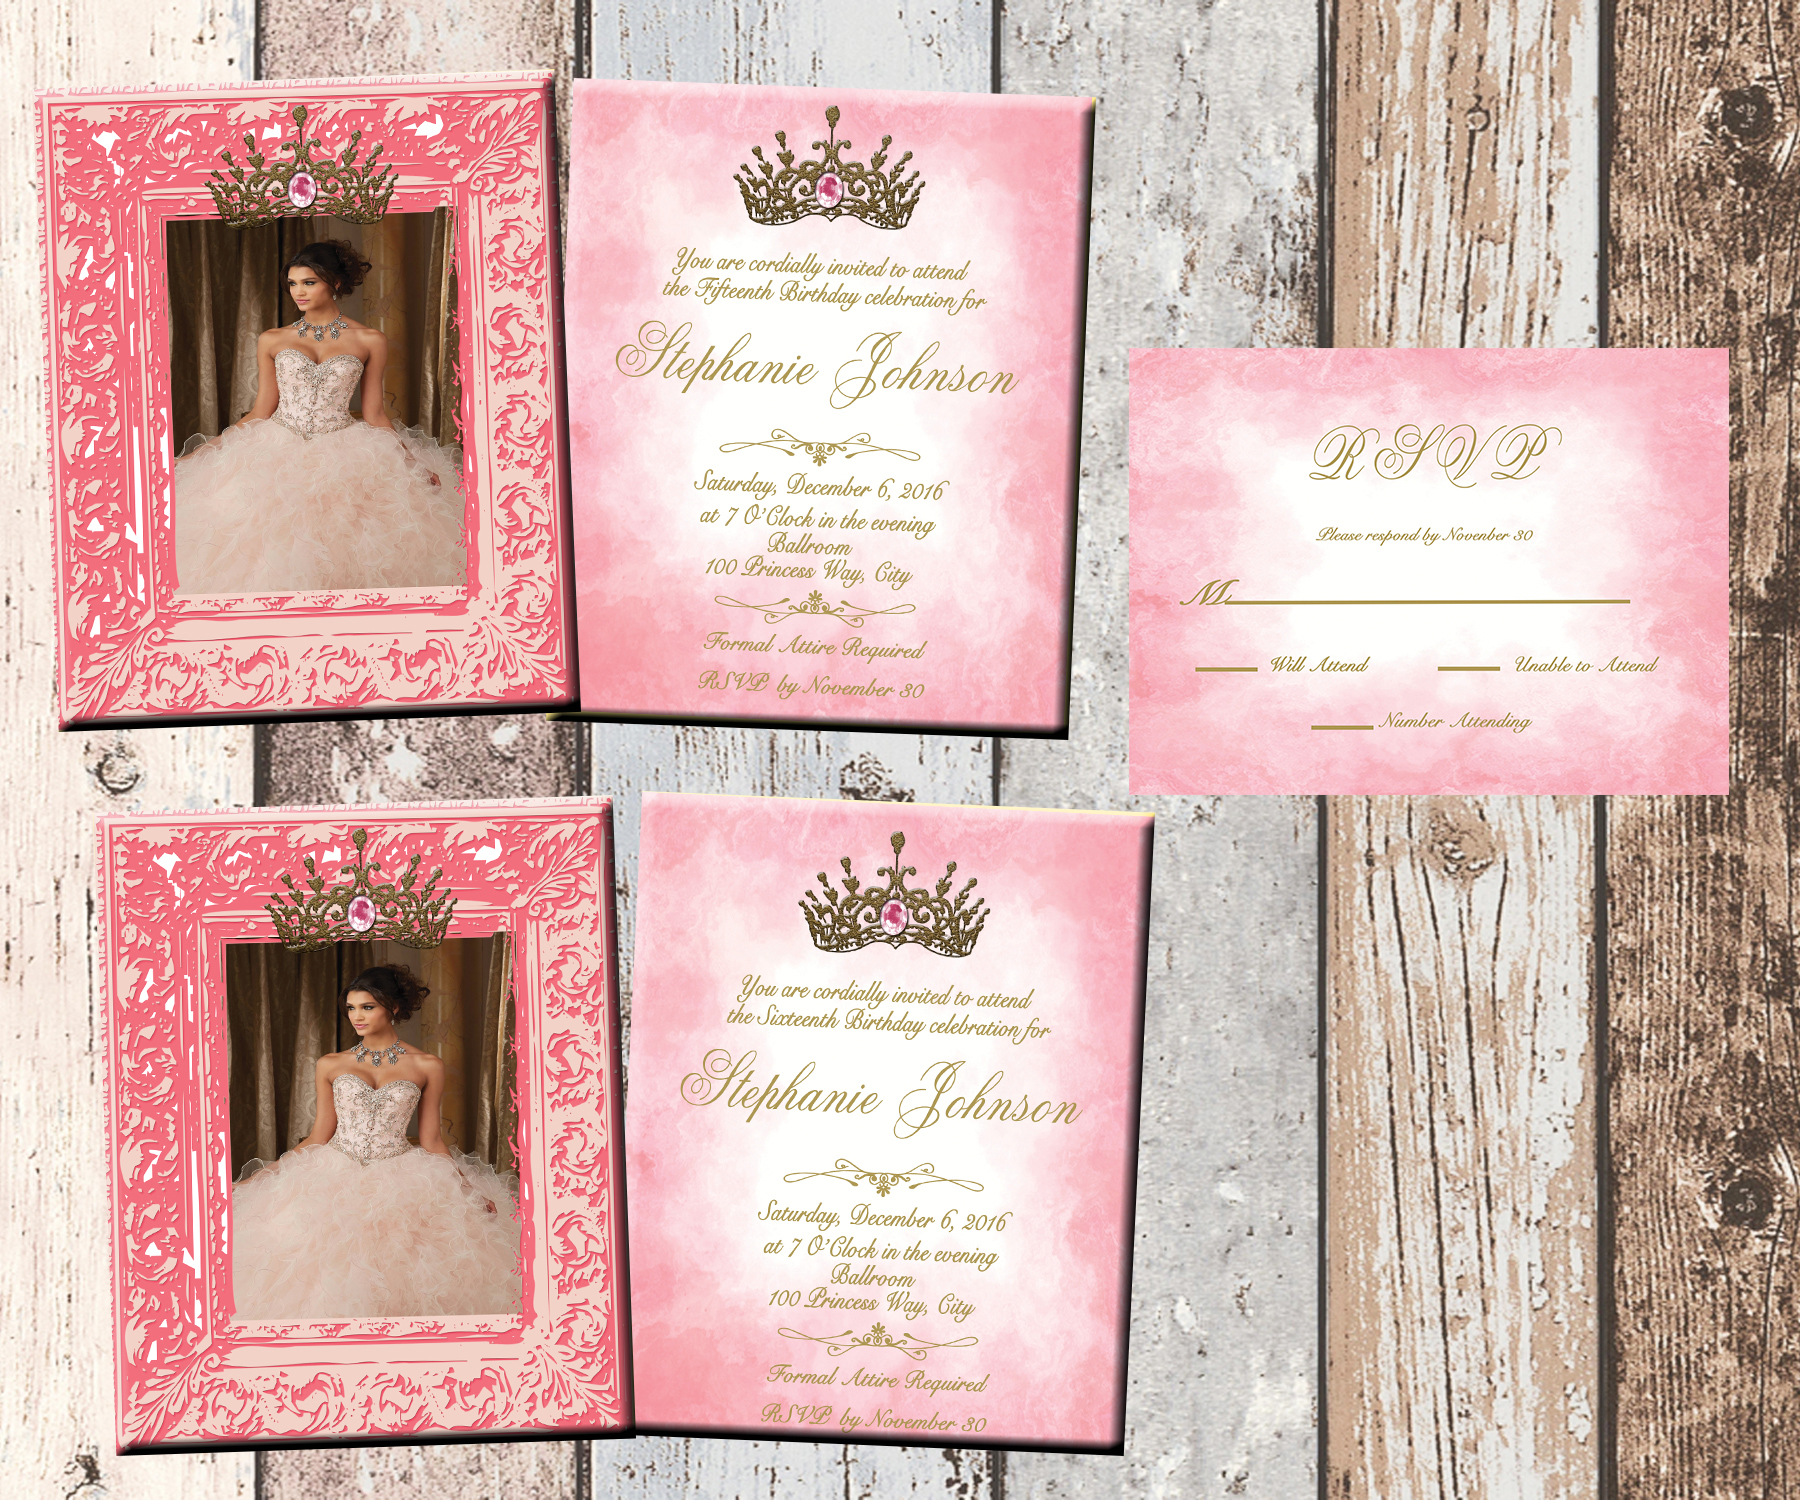 Princess Photo Quinceanera Or Sweet 16 Personalized Birthday Invitation 2 Sided Card Party